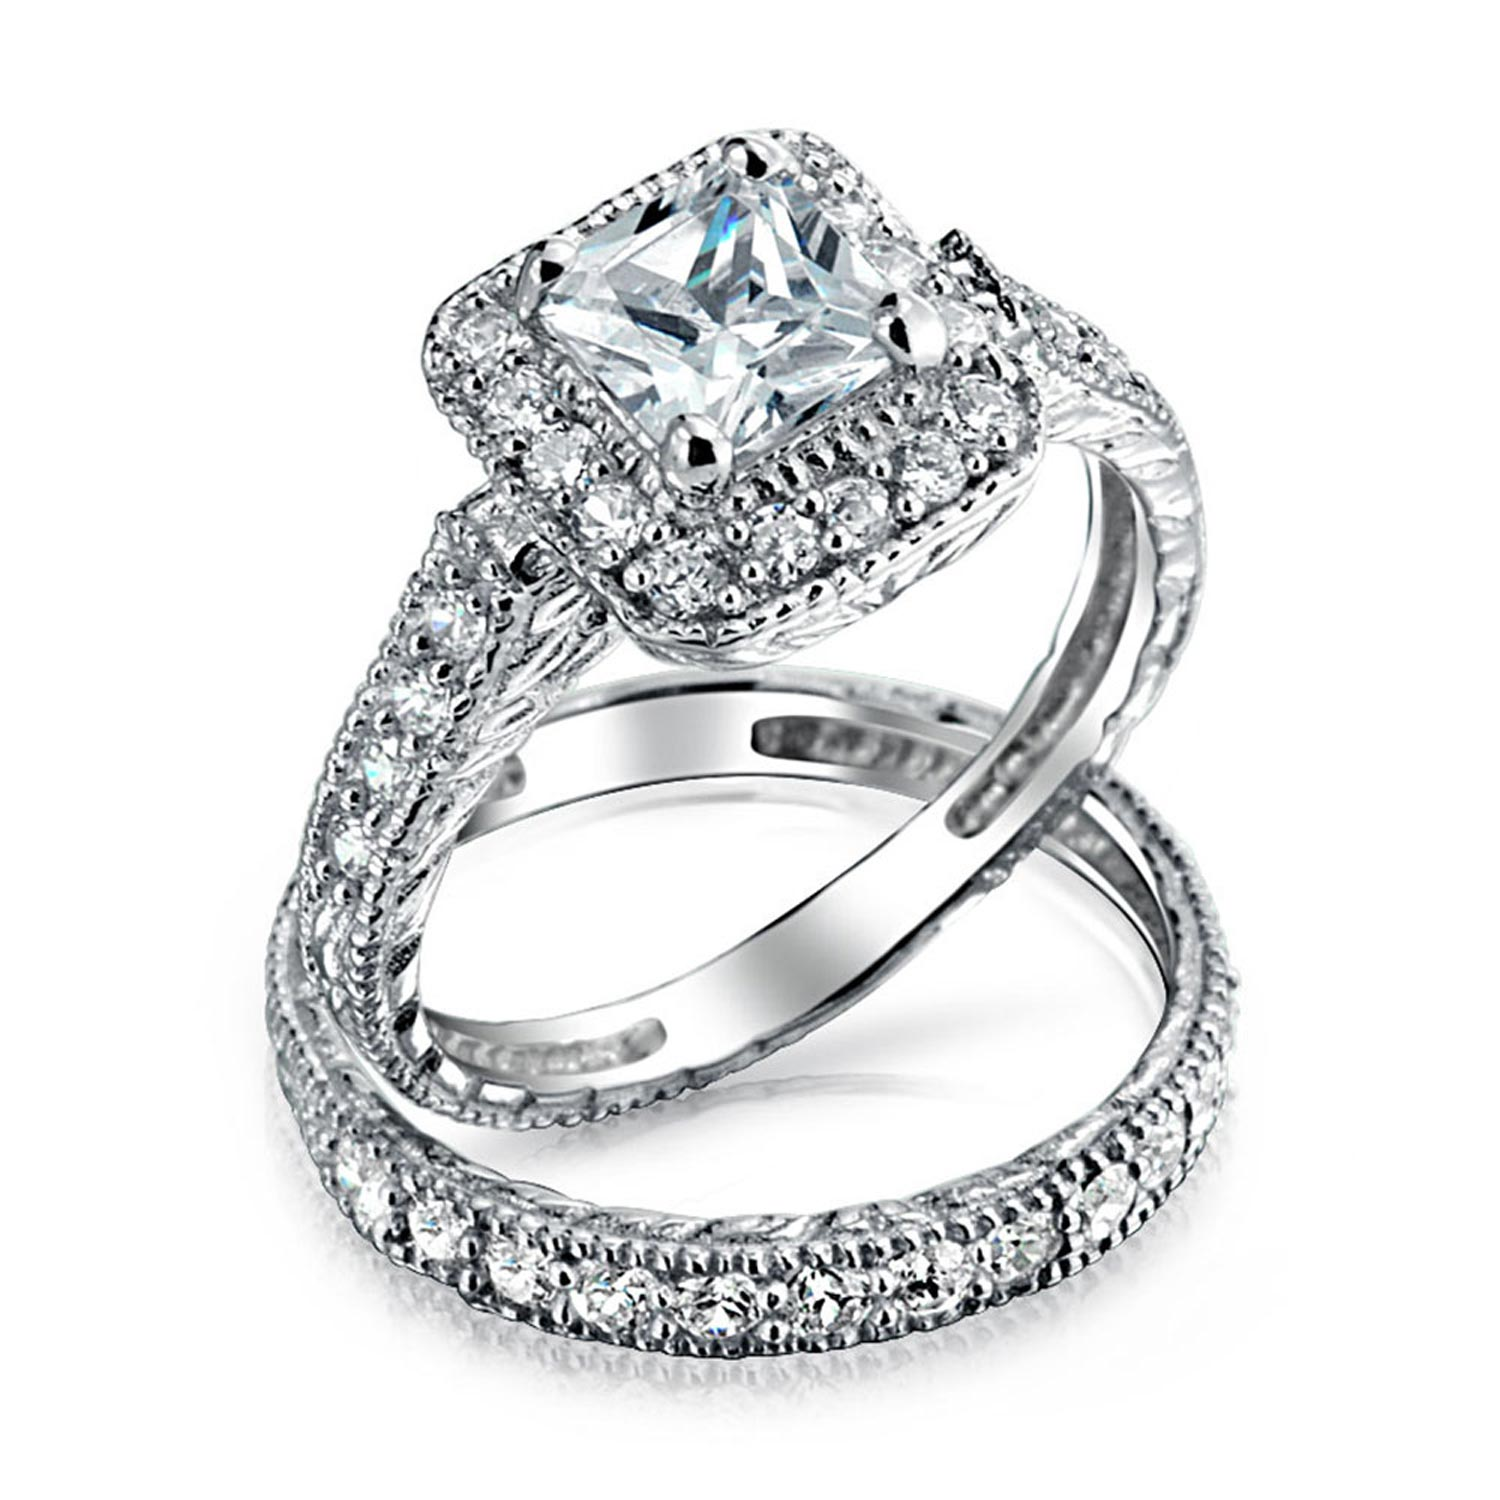 Bling Jewelry Silver Princess CZ Deco Style Engagement Wedding Ring